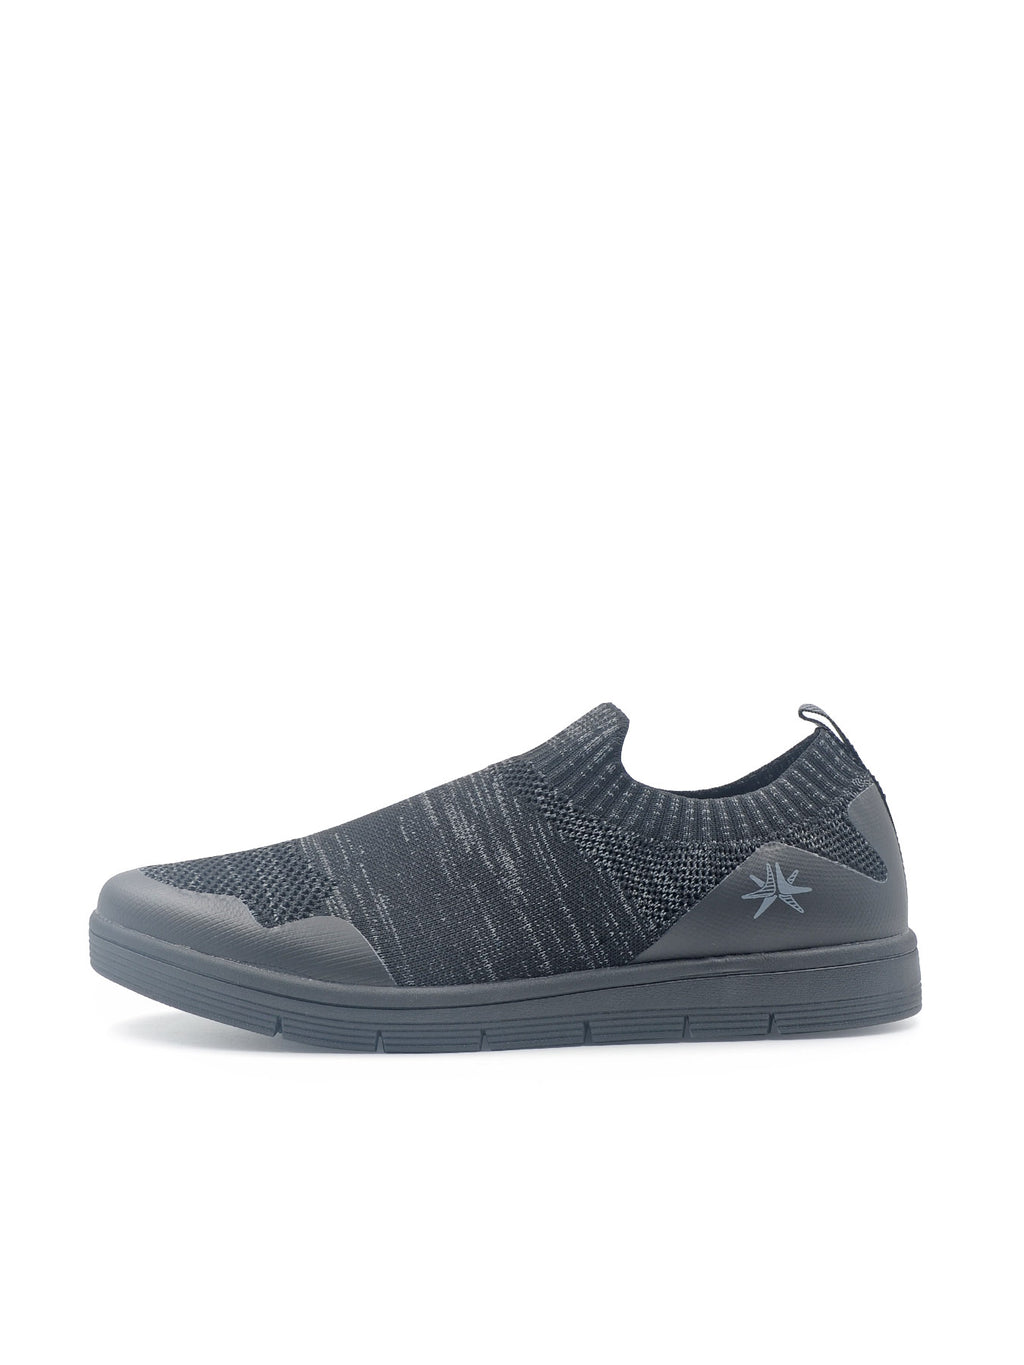 LARRIE Men Black Casual LaKnit Slip On Shoes